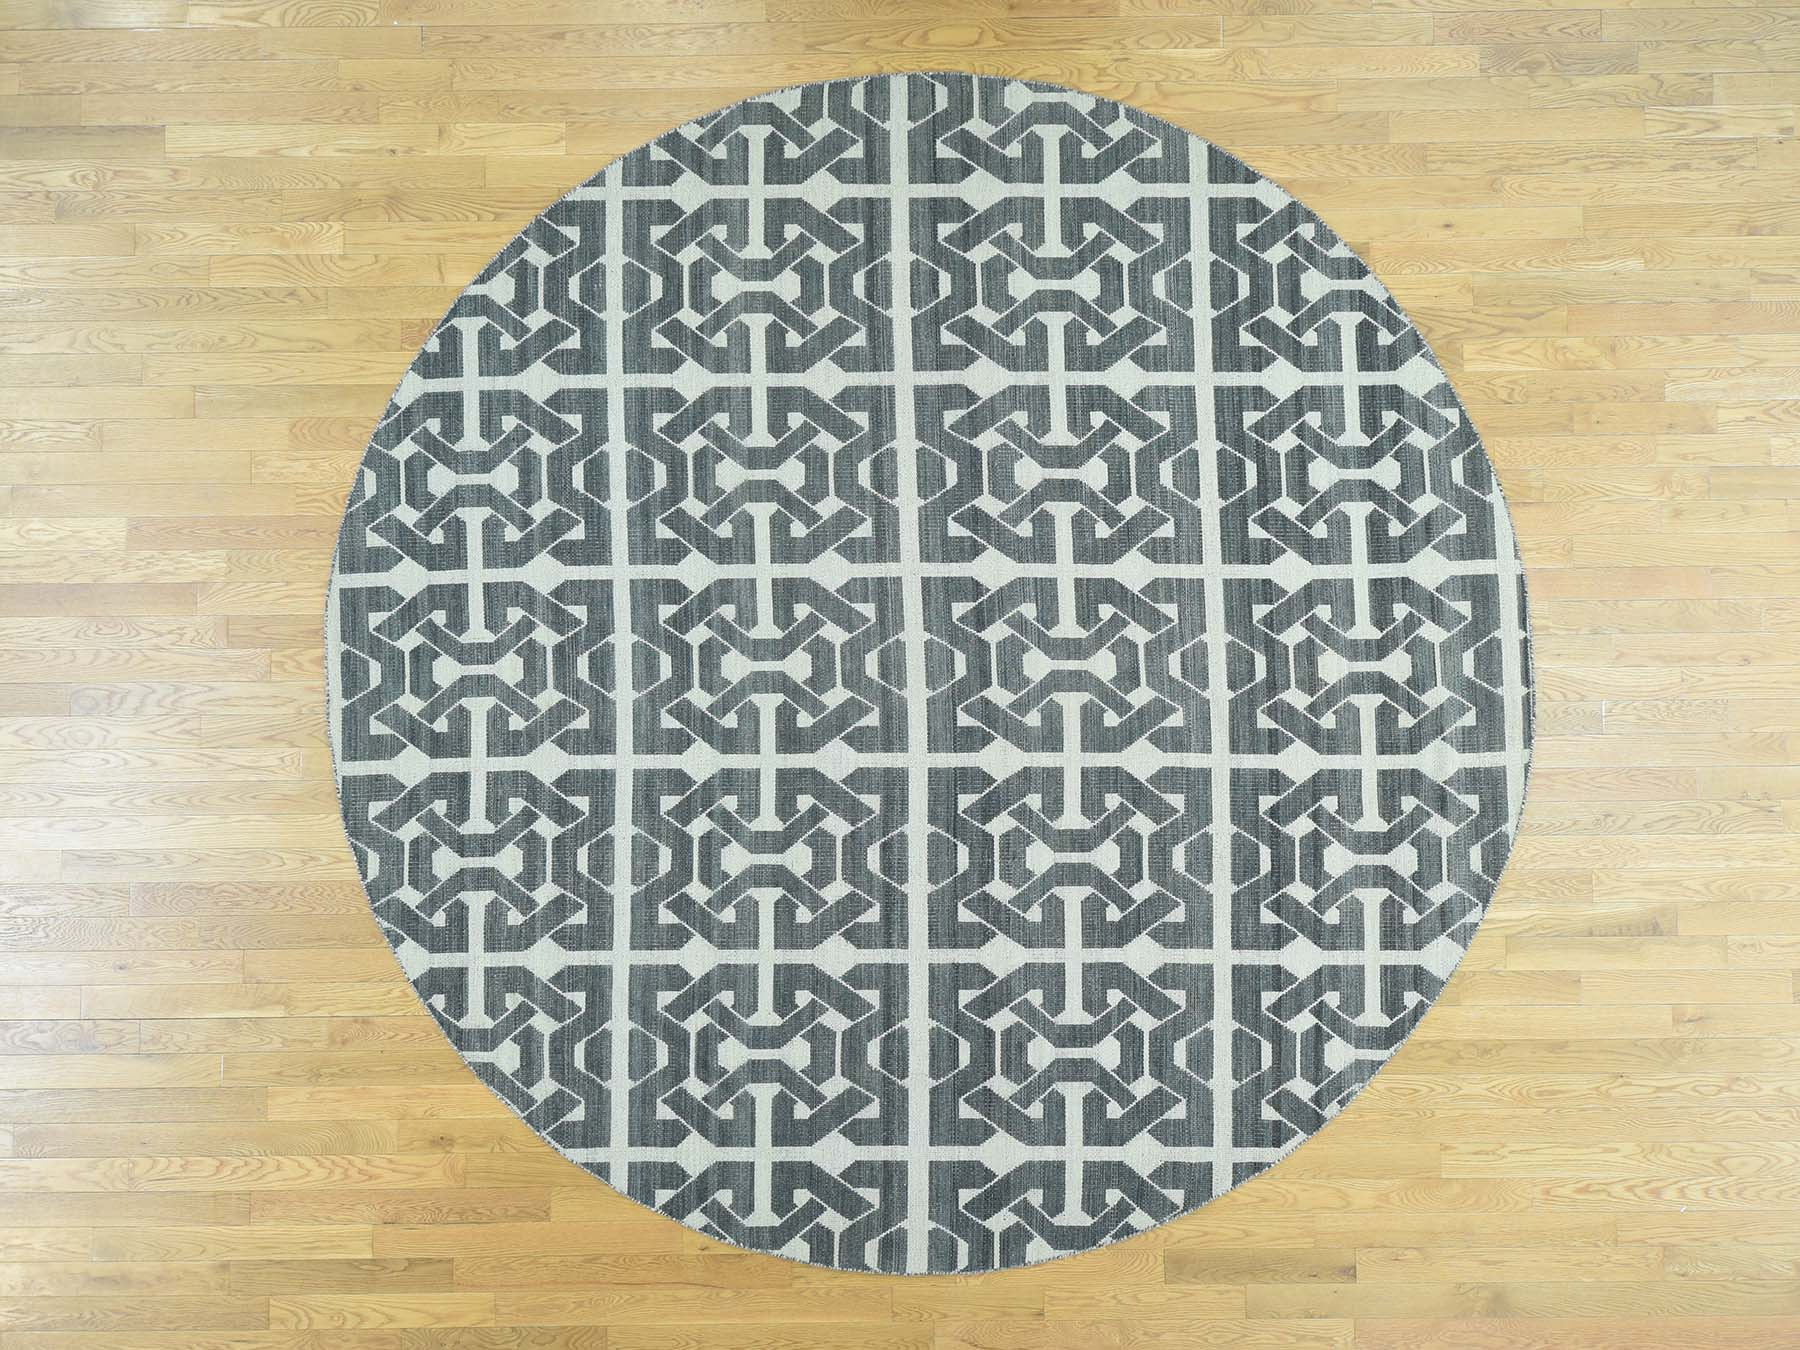 9-10 x9-10  Hand Woven Flat Weave Durie Kilim Reversible Round Rug